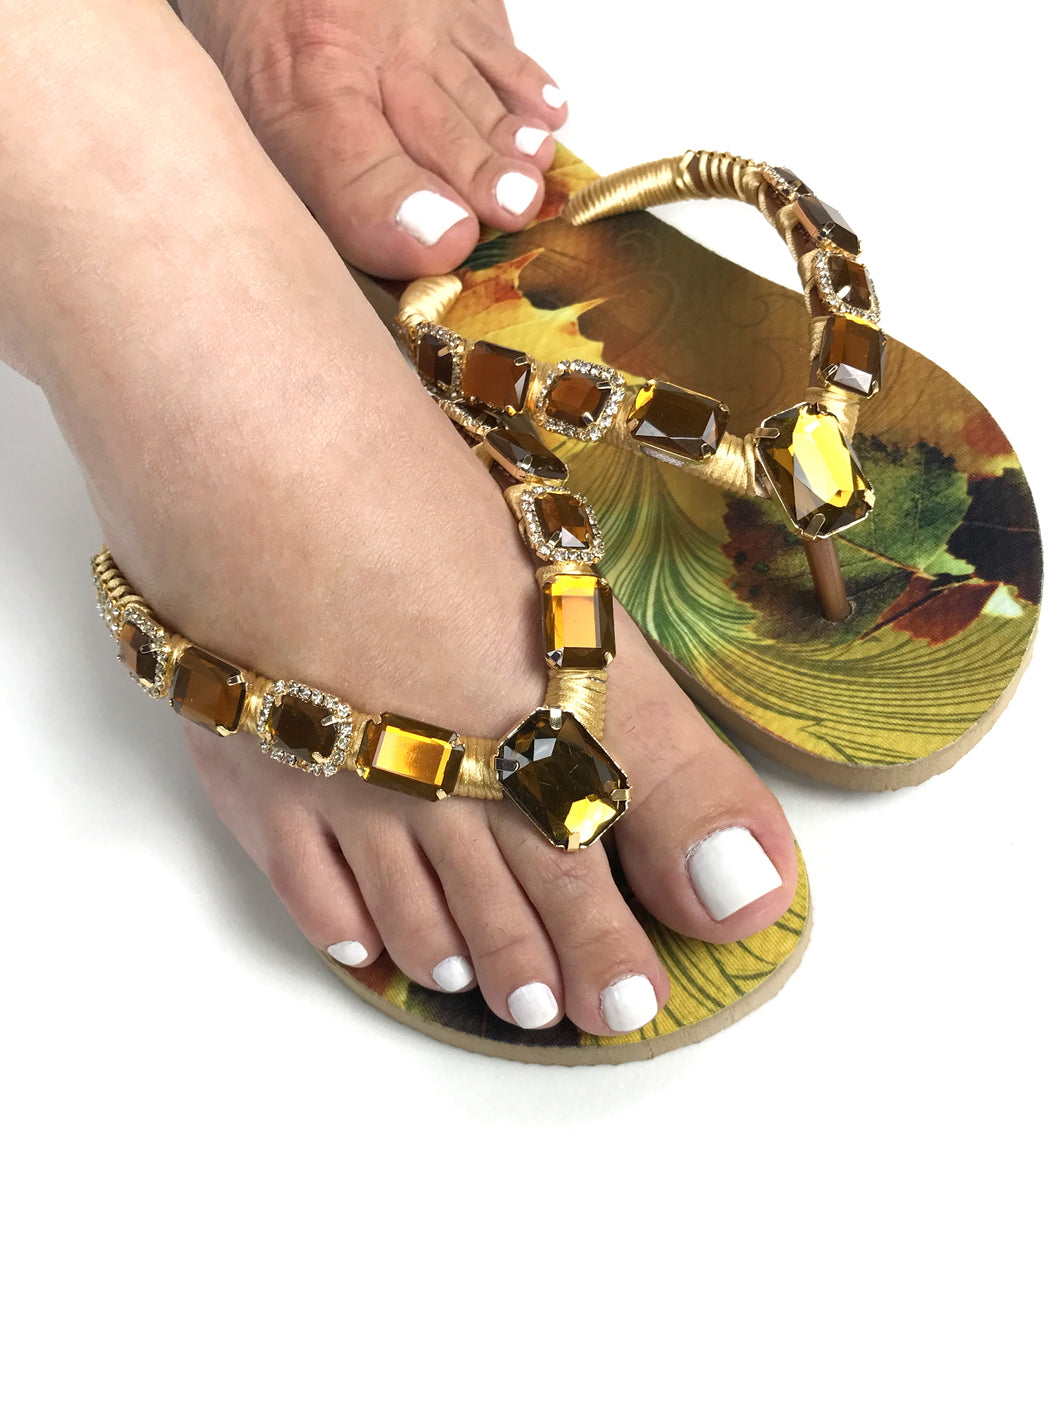 Customized HAVAIANAS, exclusive nature inspired pattern, old gold - yellowish rhinestones/crystals - SLIM